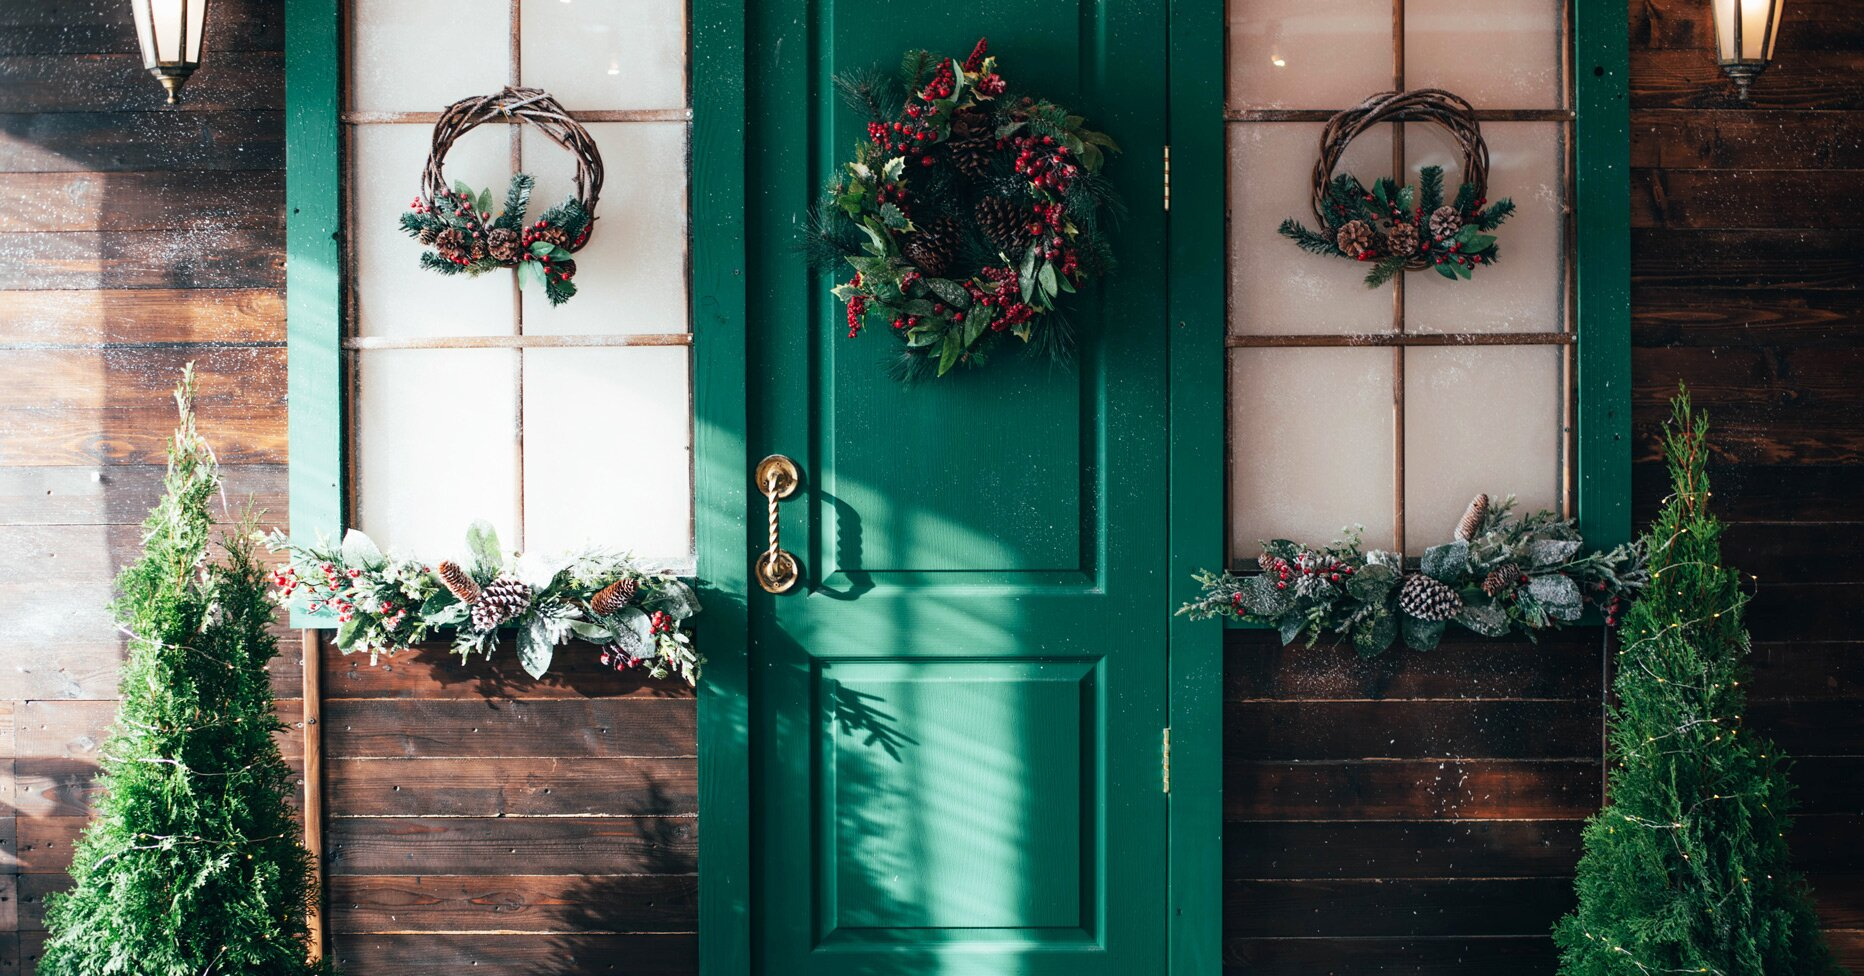 Festive Front Door Decorations for the Holiday Season